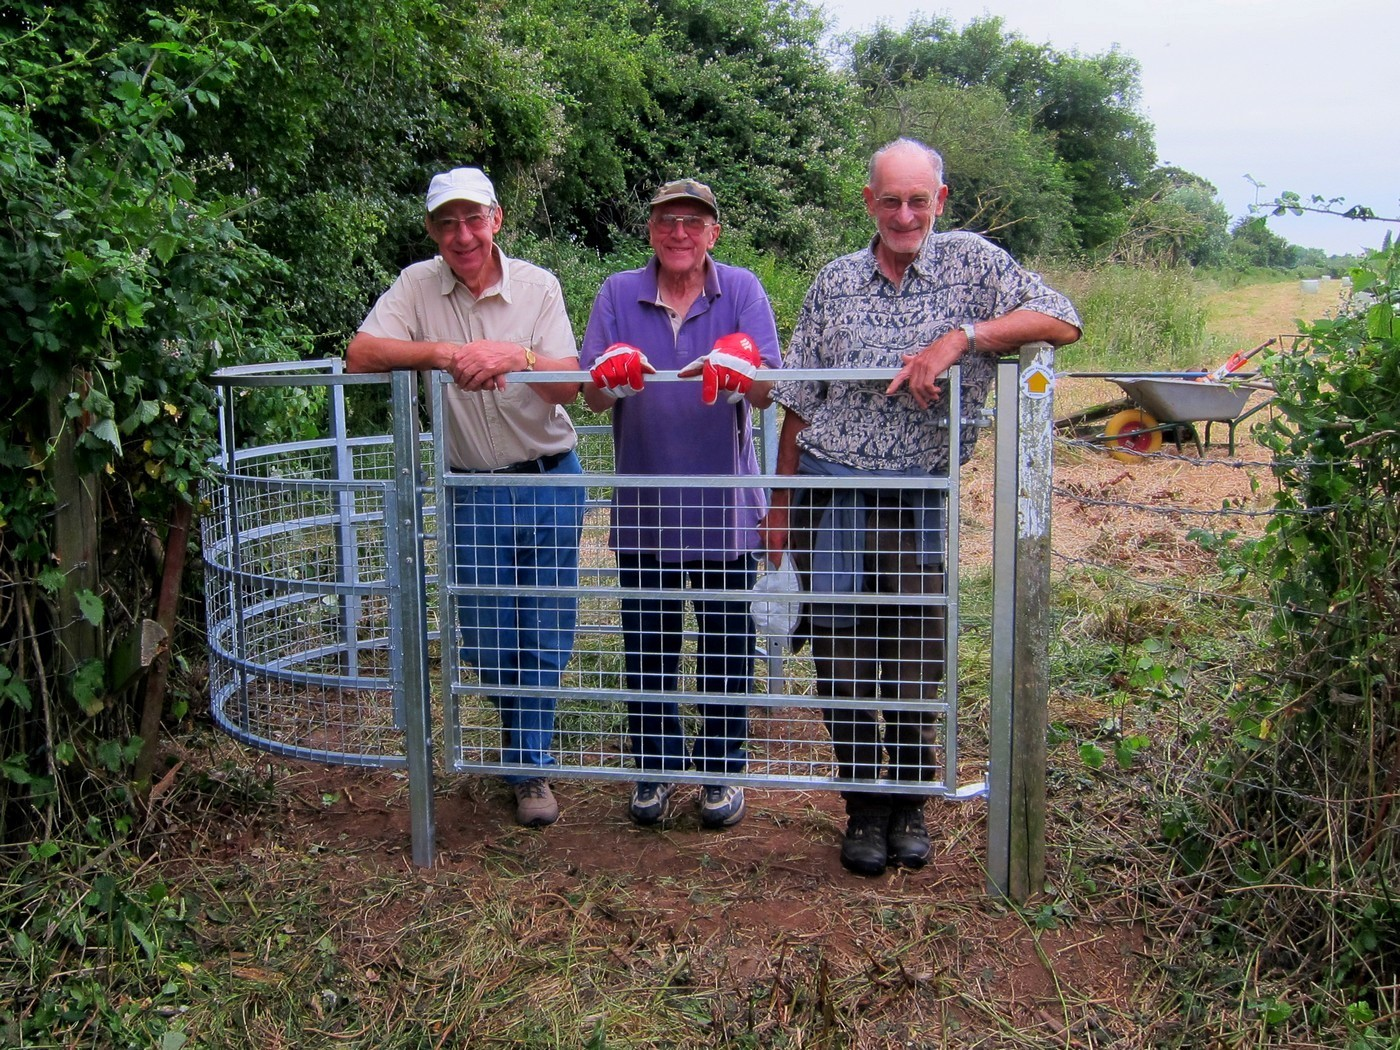 Geoff Smith, Ken Sefton and Paul Jennings with one of the new gates